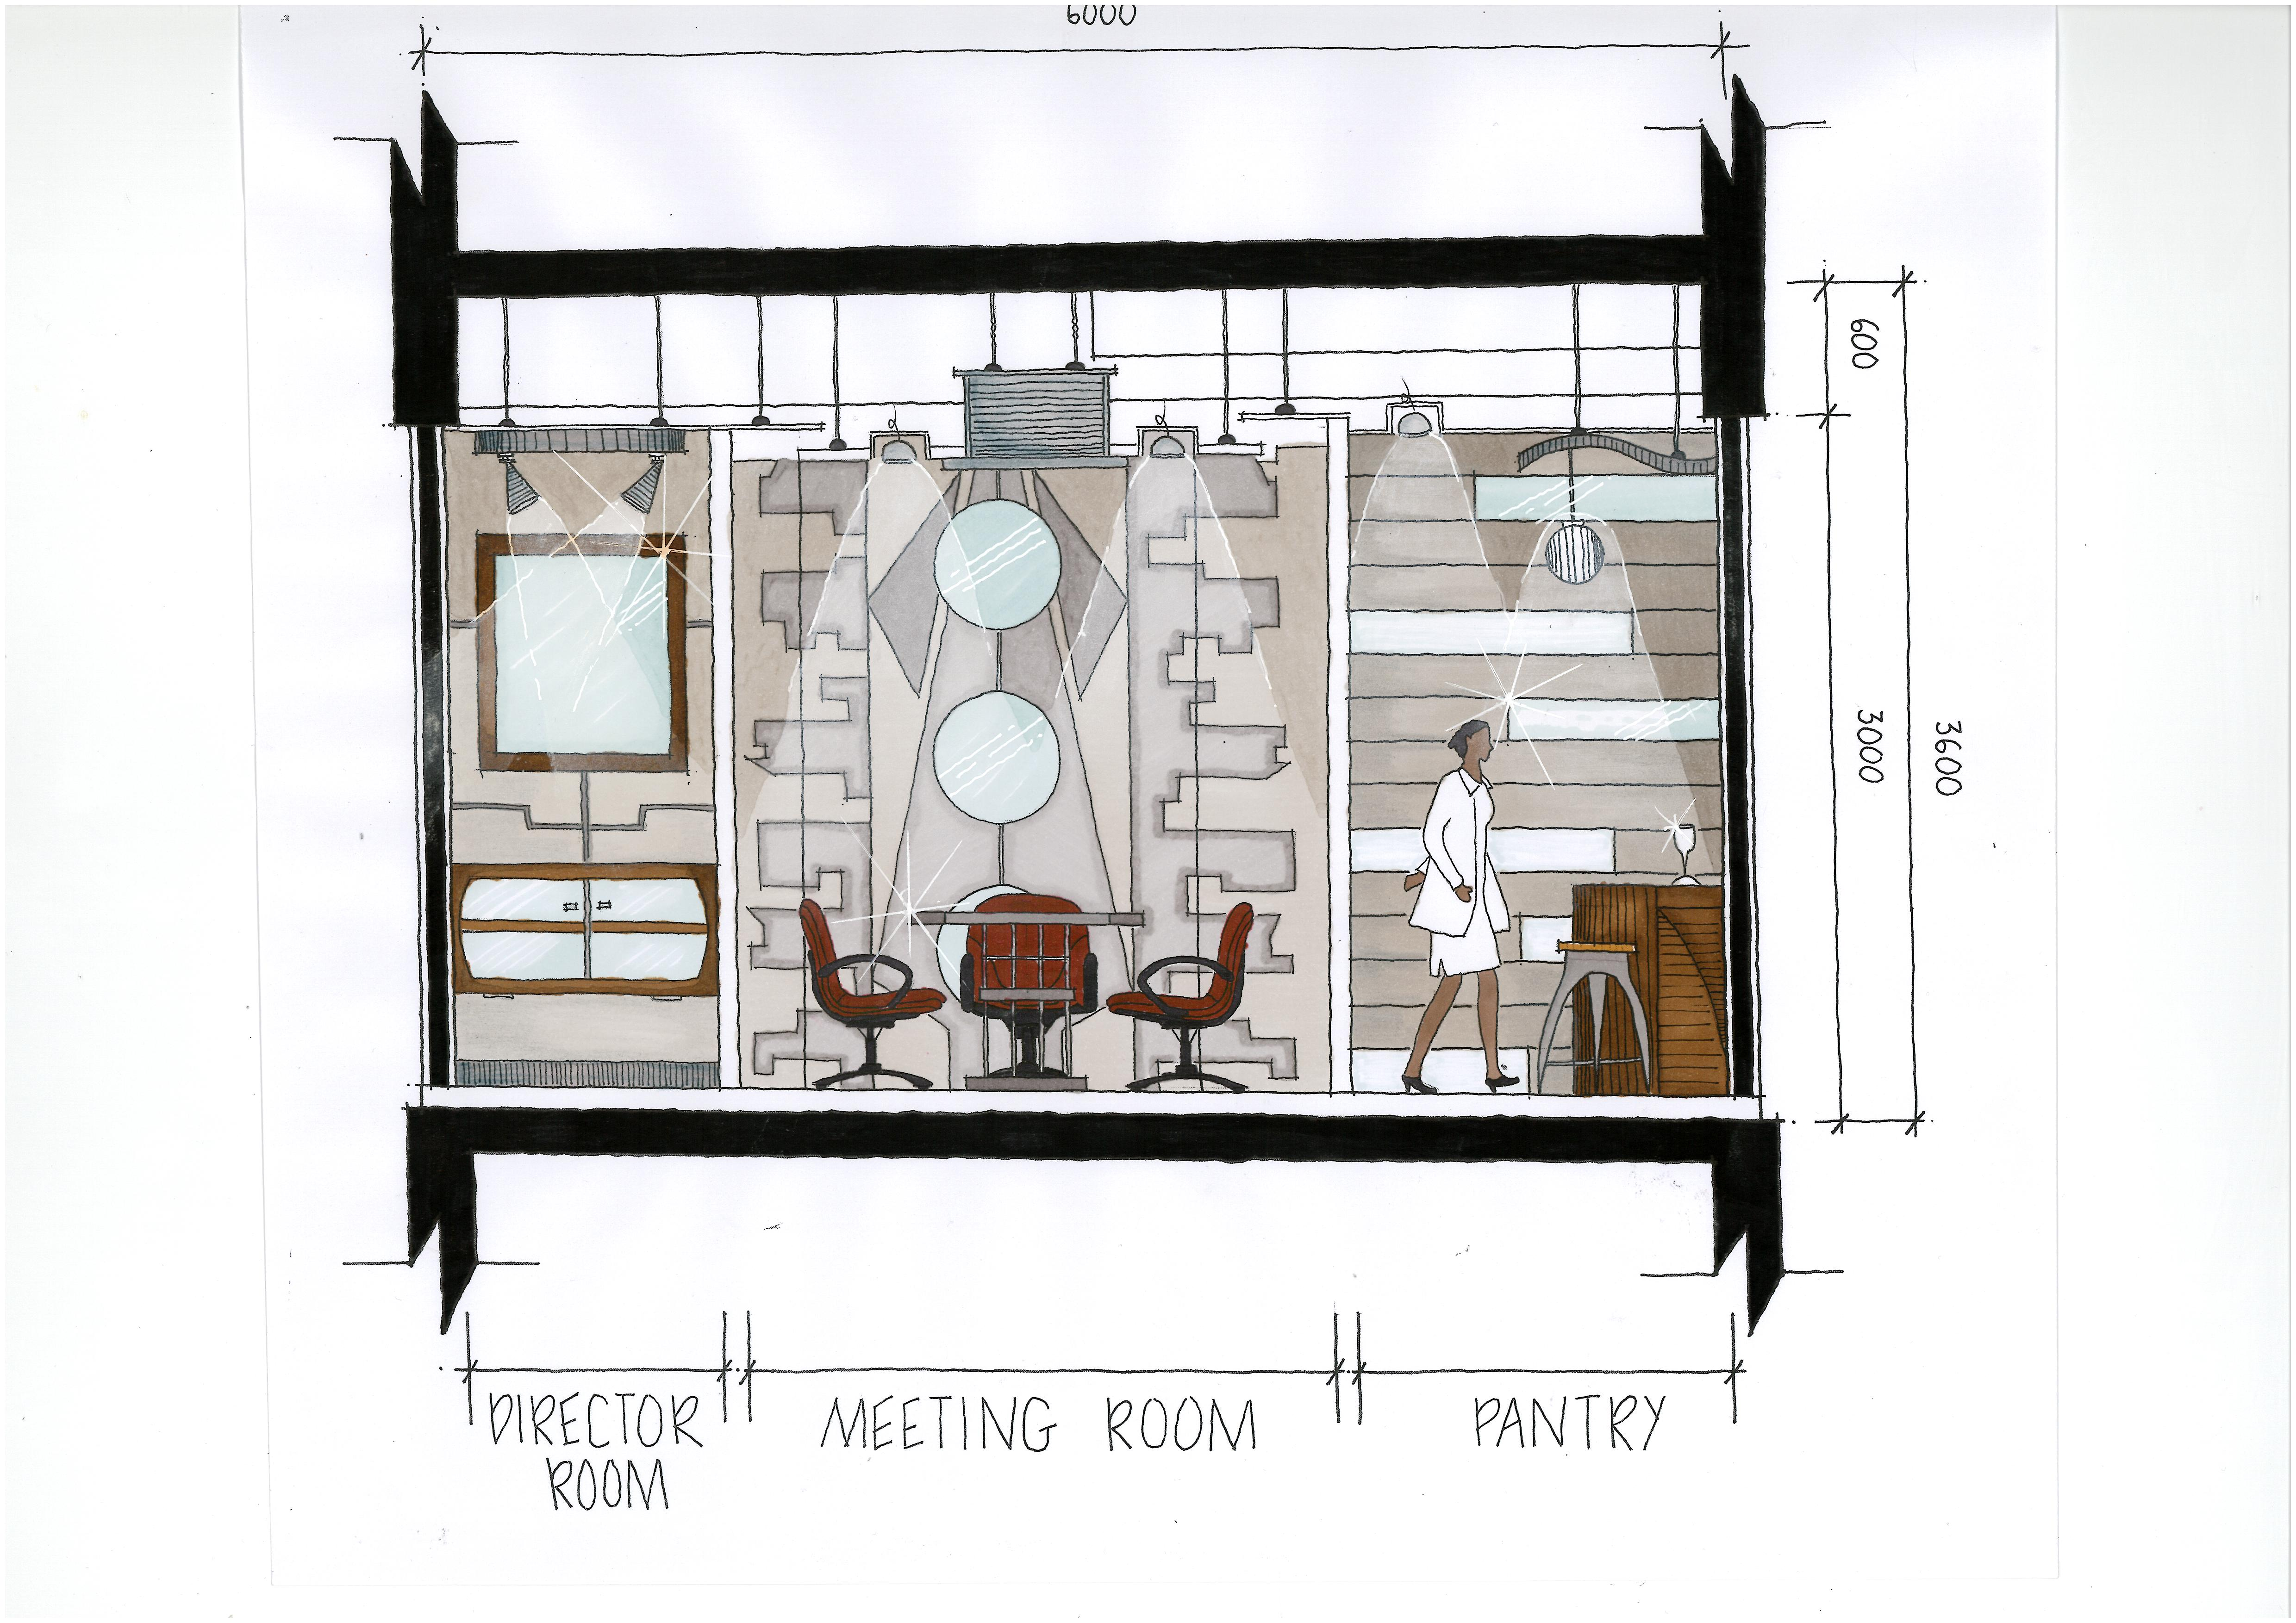 Sometimes, as with the example shown, the interior elevations will be on a sheet with other things like the building section. It depends on the size and complexity of the home plans whether the interior elevations will have their own sheet or not.